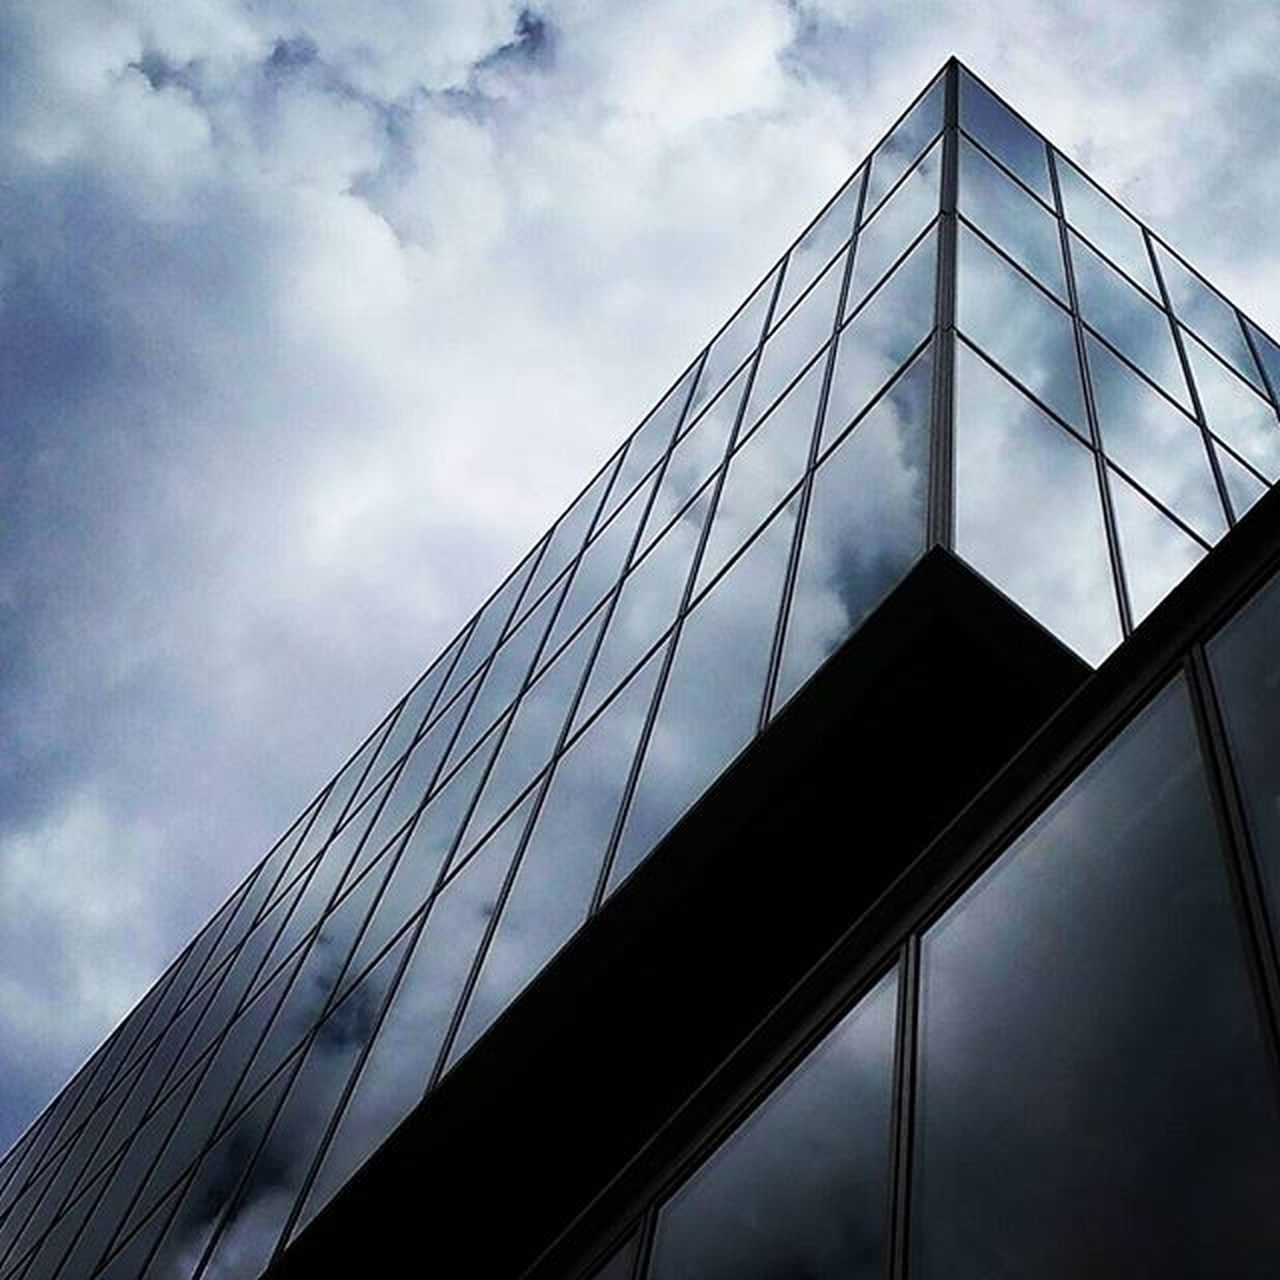 Prospettive Fieramilano Architecture Modern Glass Sky Clouds Photooftheday Picoftheday Instadaily Instagood